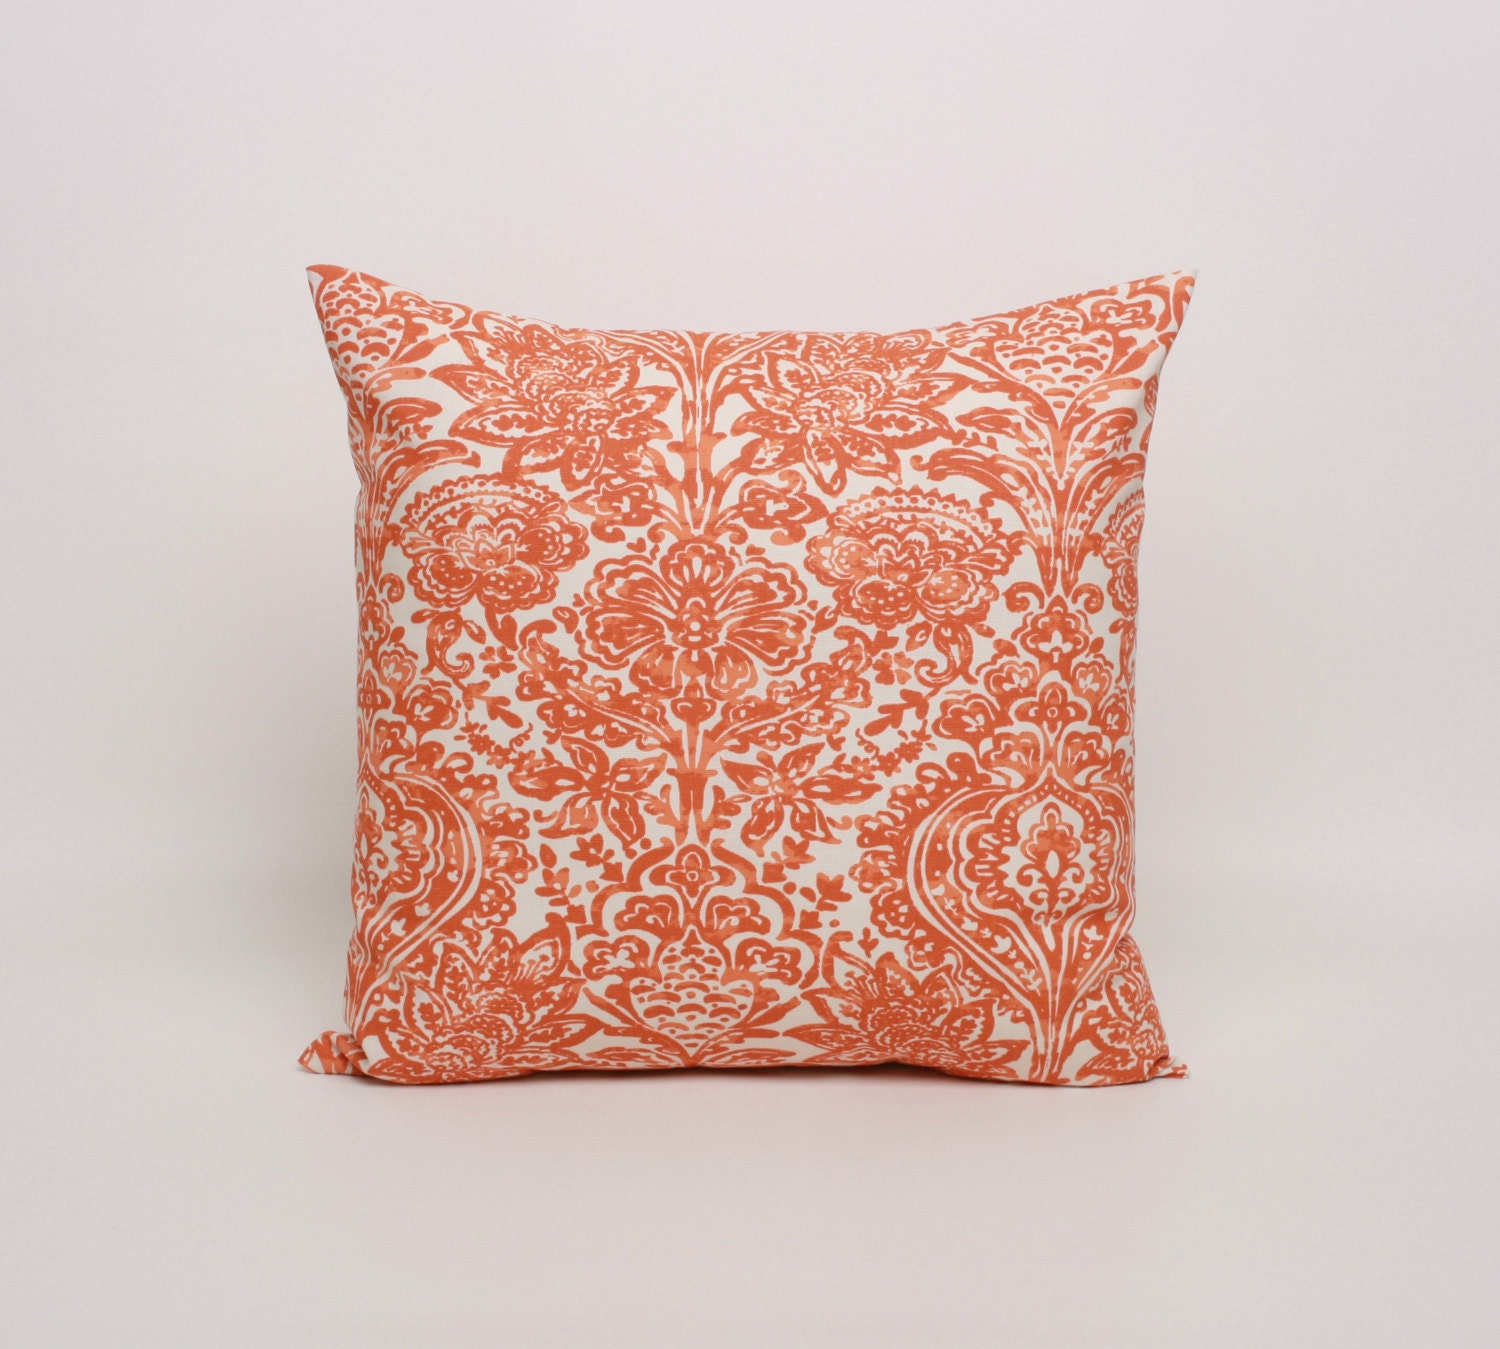 Orange Pillow Cover Orange Cushion Cover 20x20 Throw Pillow